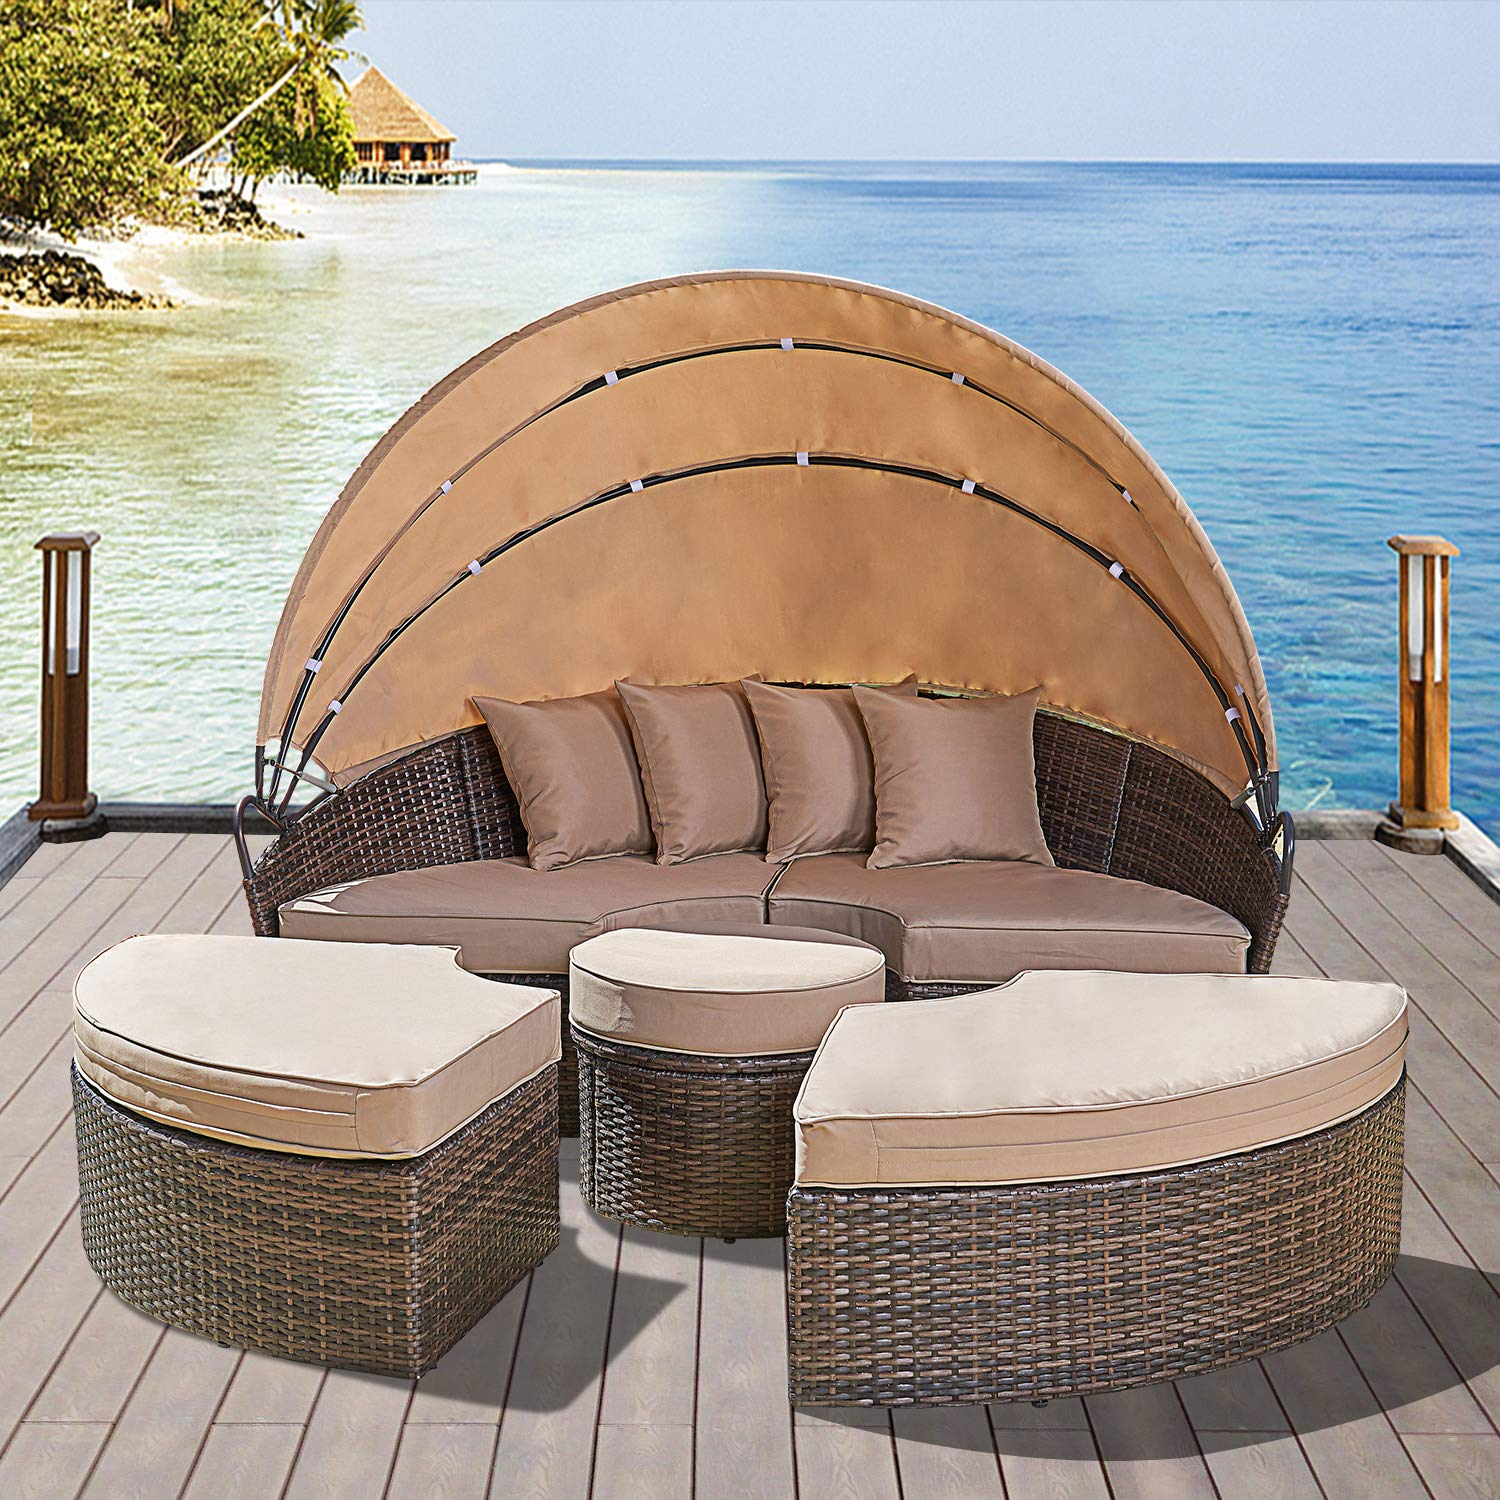 Solaura Outdoor Patio Round Daybed with Retractable Canopy and Brown Wicker, Seating Separates Cushioned Seats (4 Light Brown Pillow) by SOLAURA